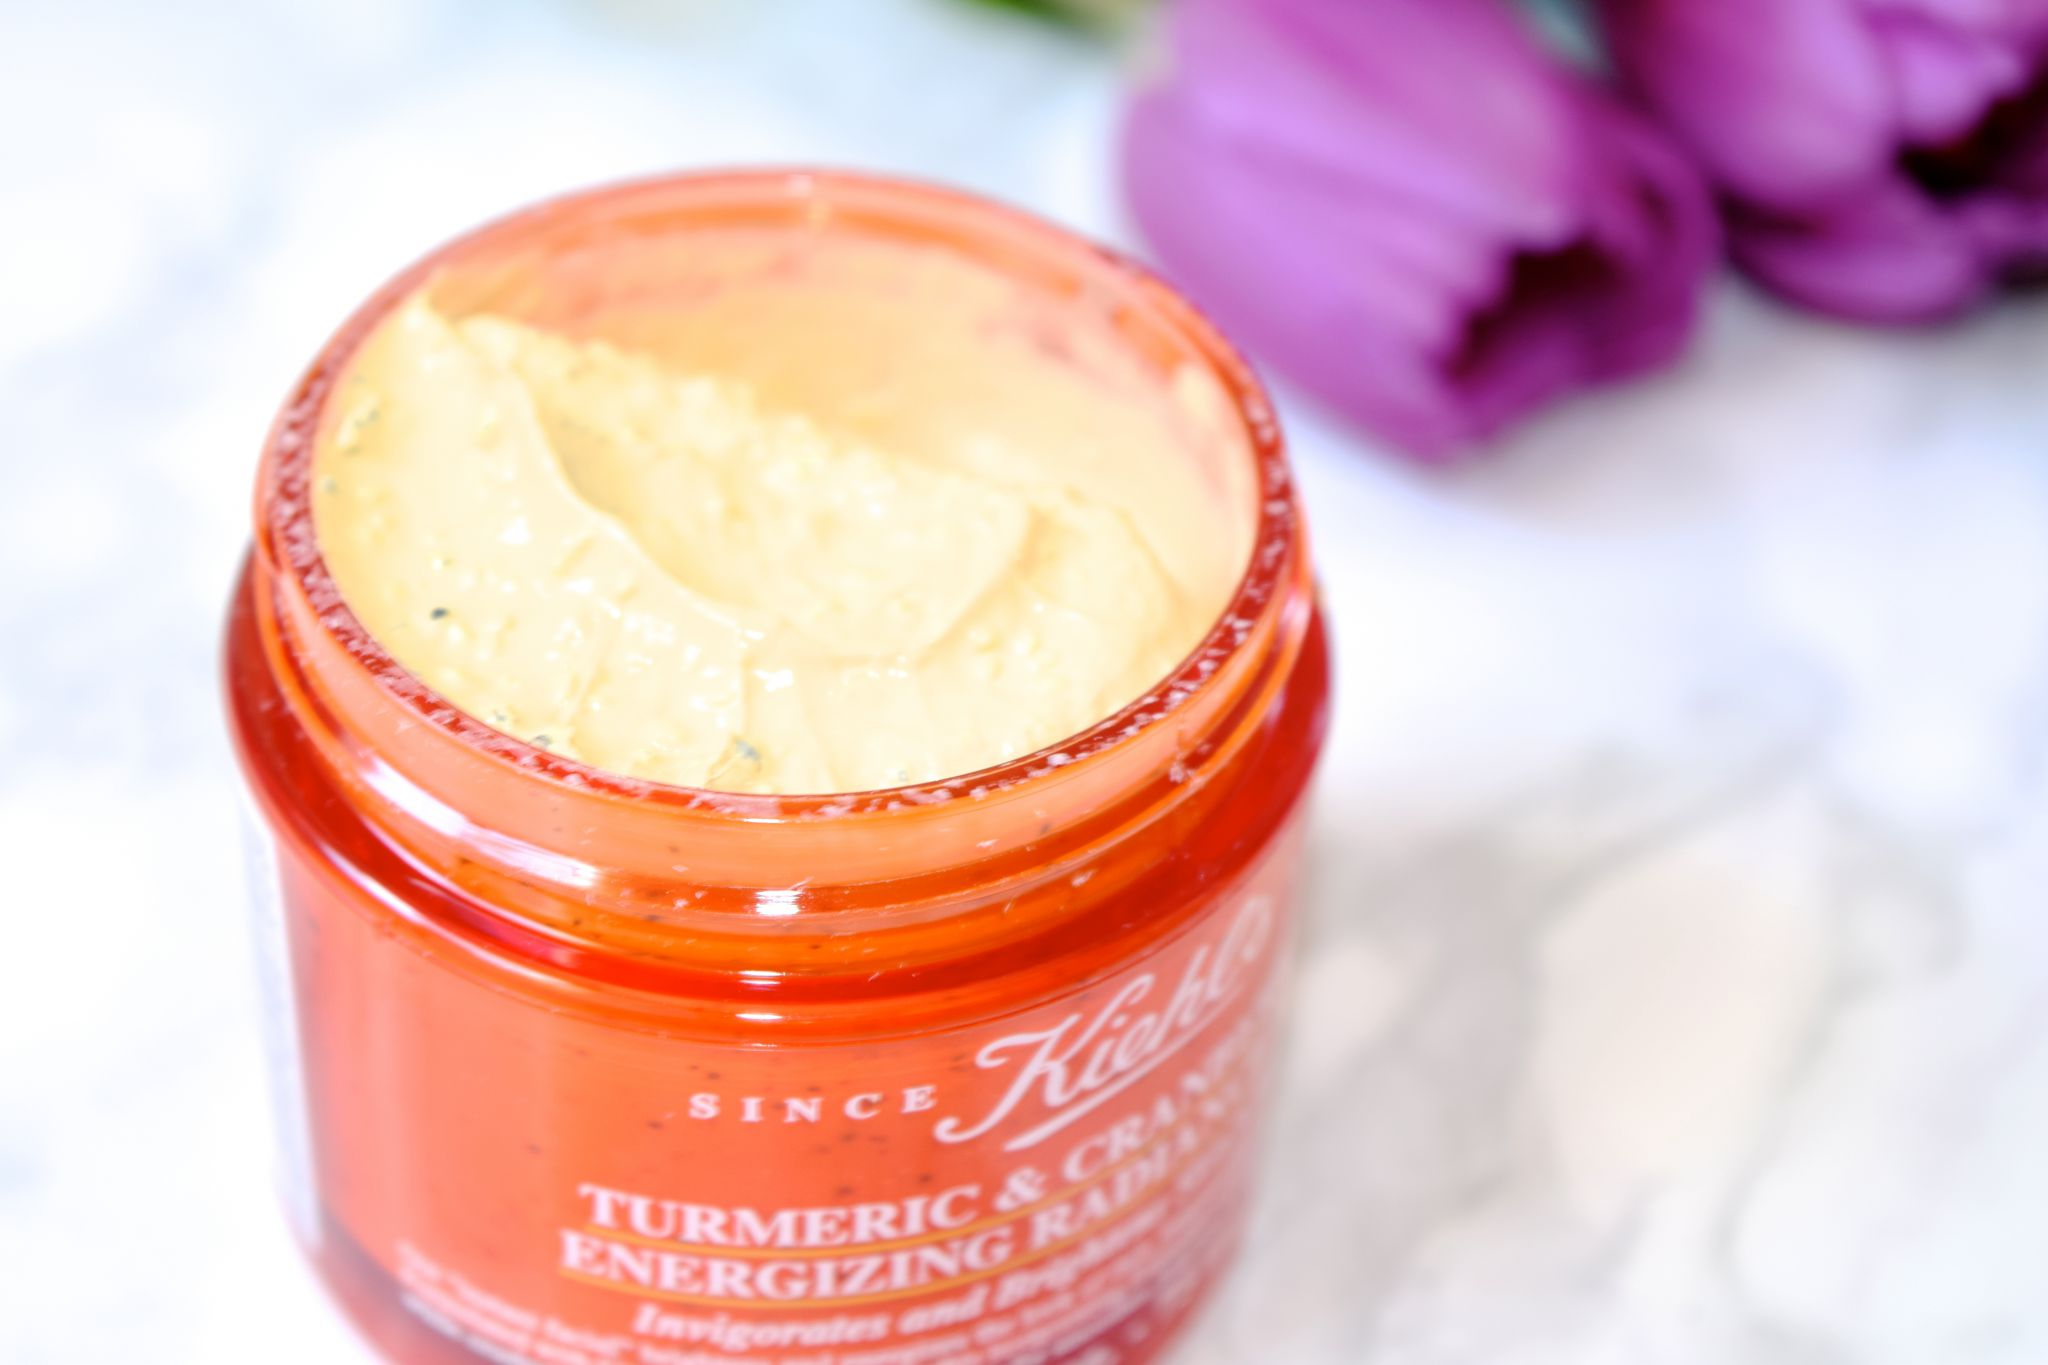 Kiehl's Turmeric and Cranberry Seed Energizing Mask 1